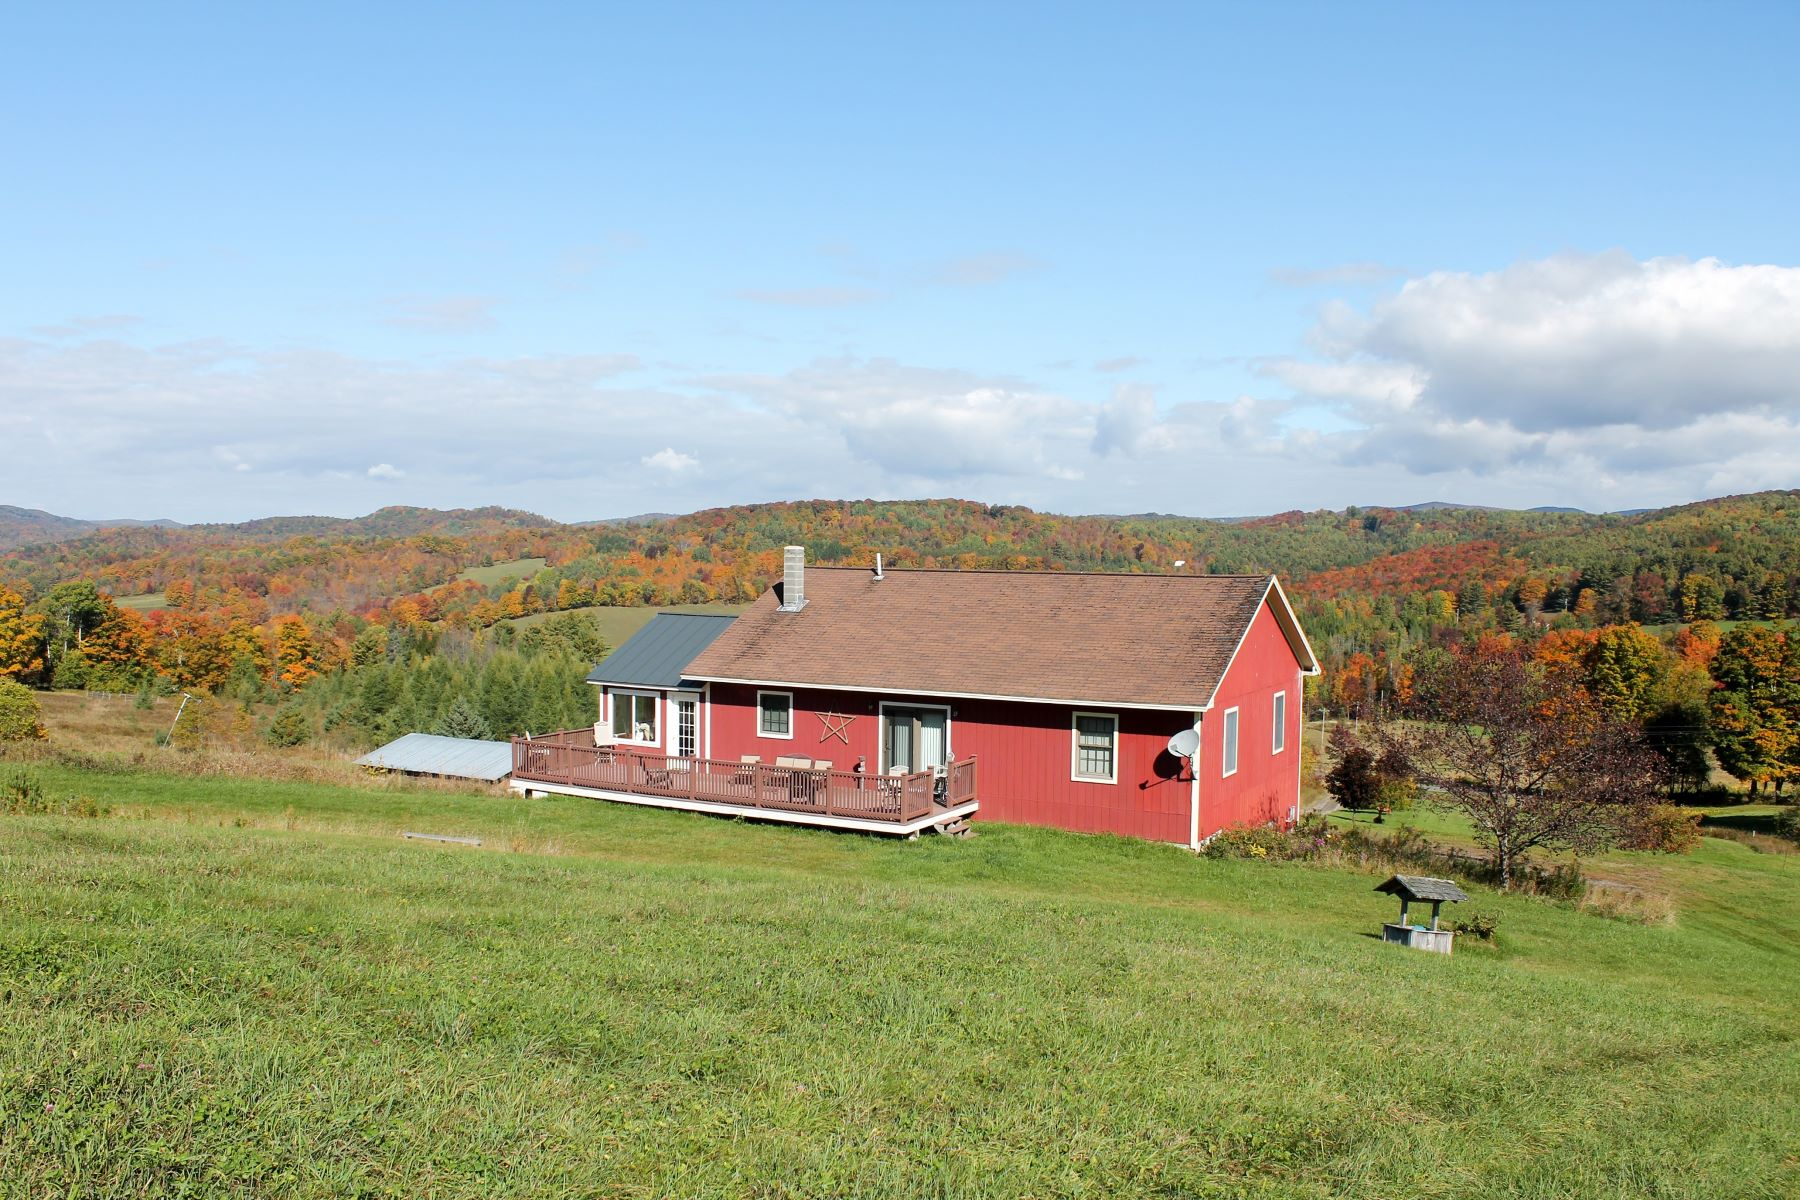 Single Family Home for Sale at Mountain Views in Chelsea 56 Densmore, Chelsea, Vermont, 05038 United States